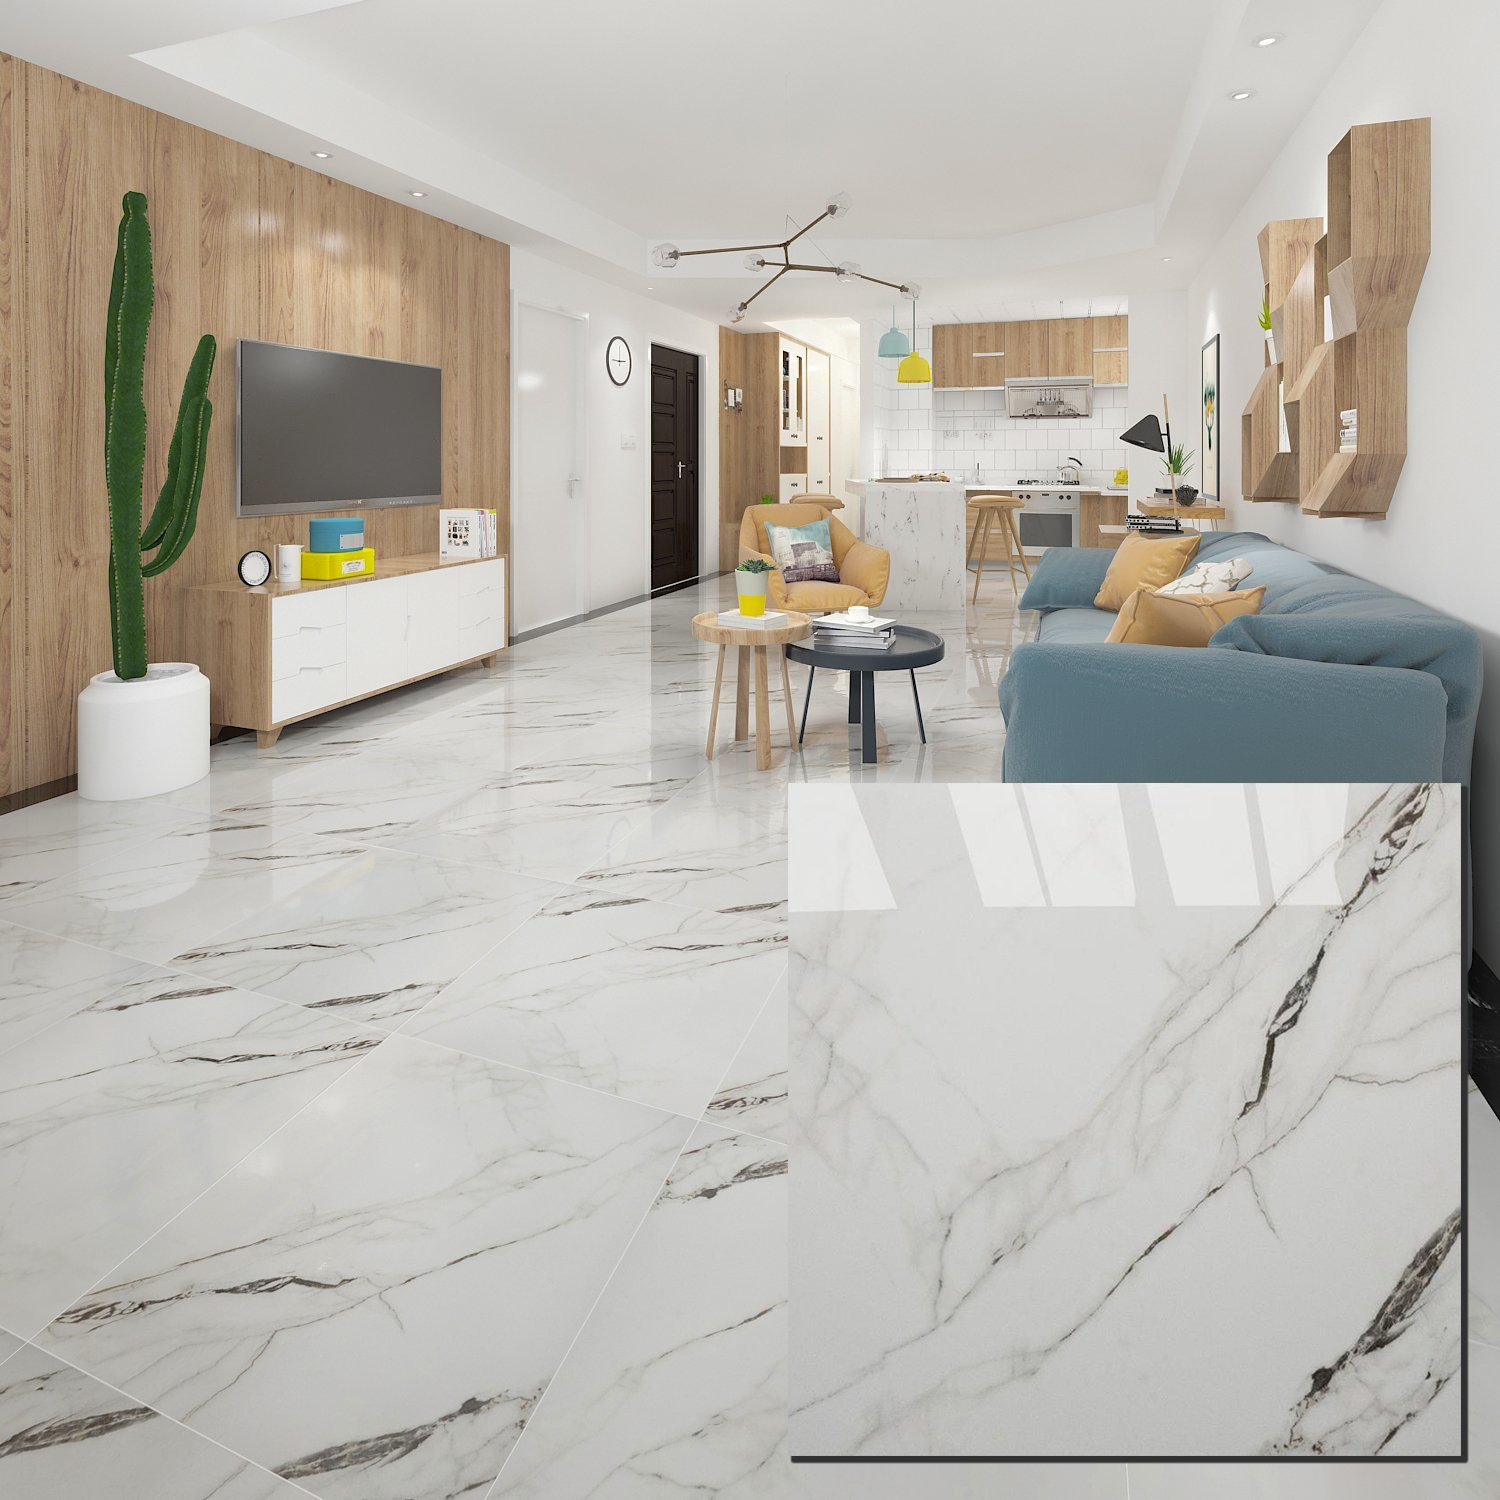 5 White Marble Ideas for Interior Designing That Will Create Awe-Inspiring Settings